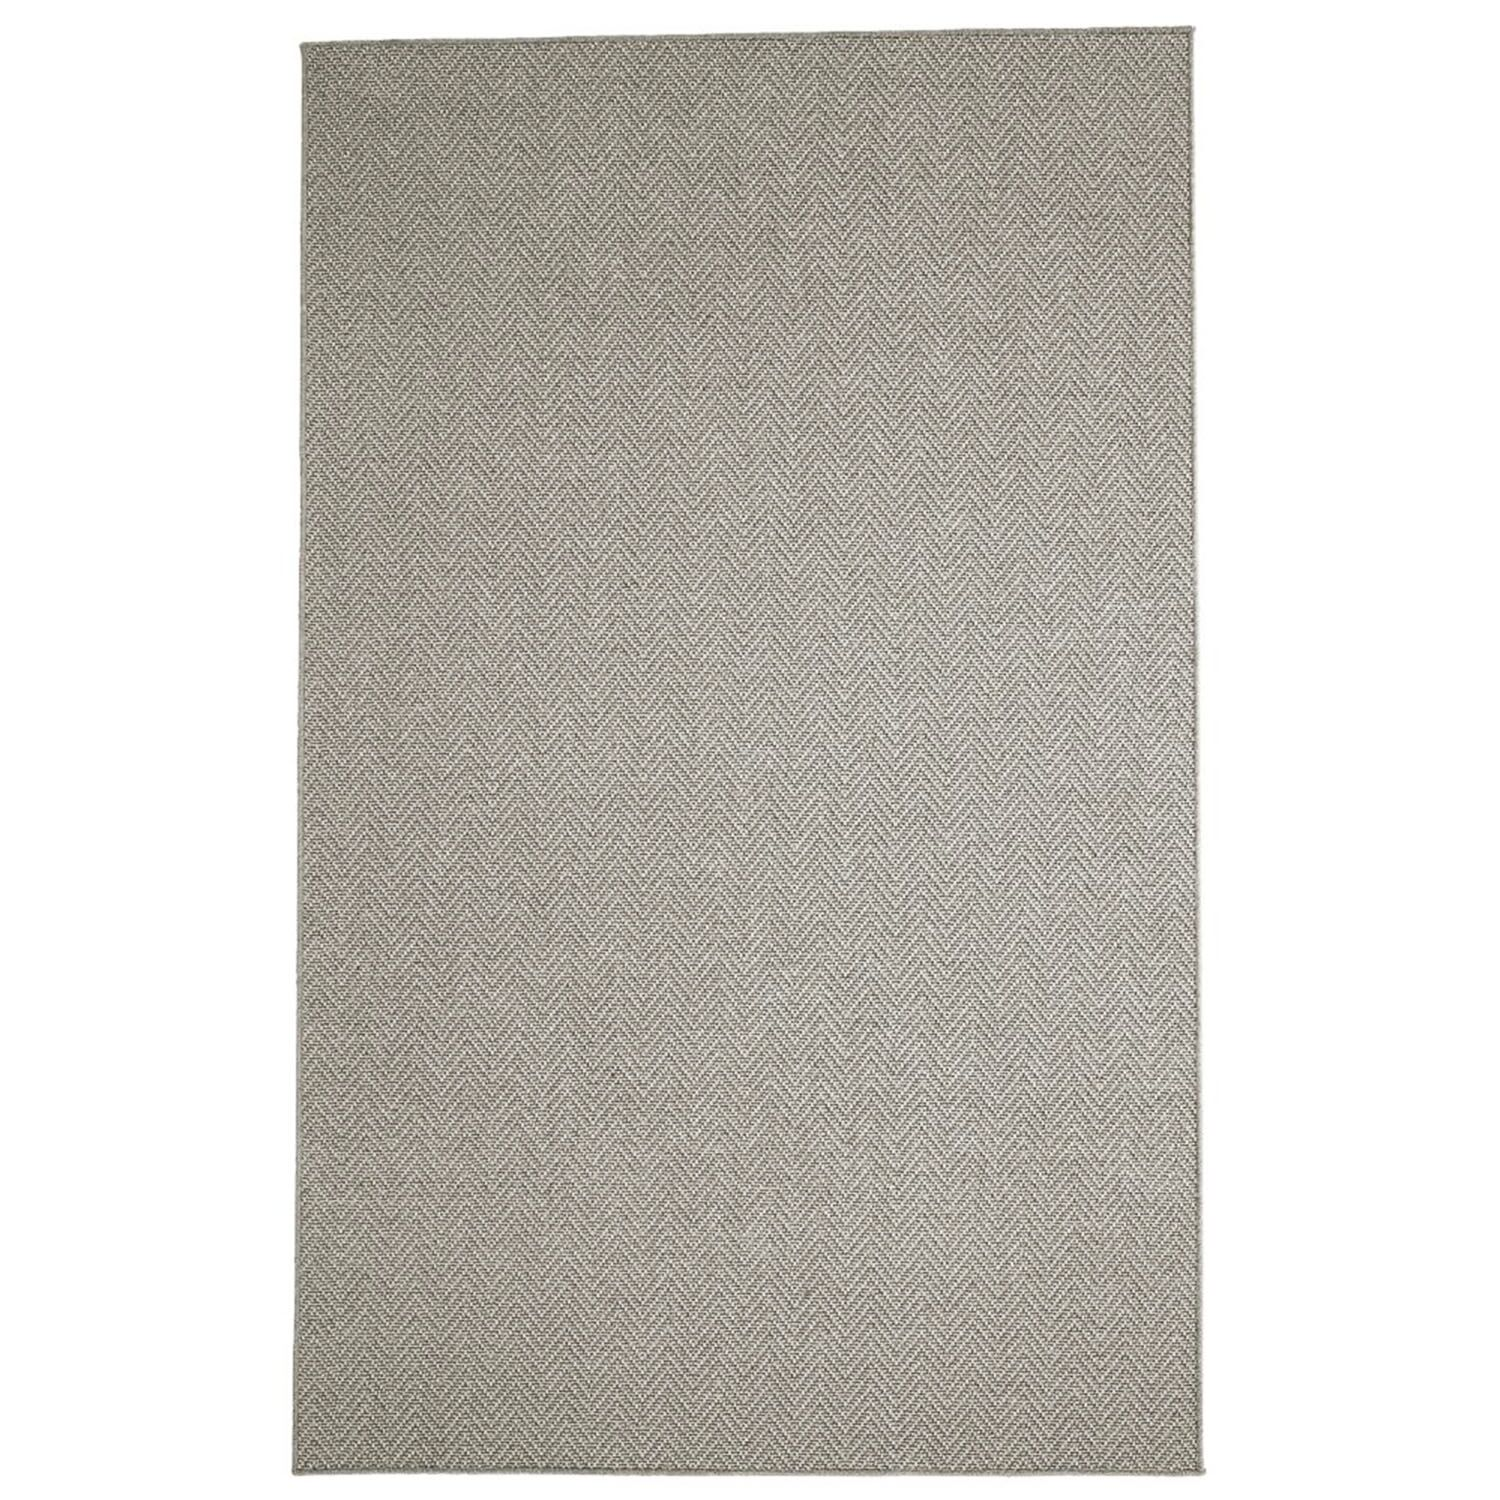 Patel Gray Area Rug Rug Size: 6' x 9'